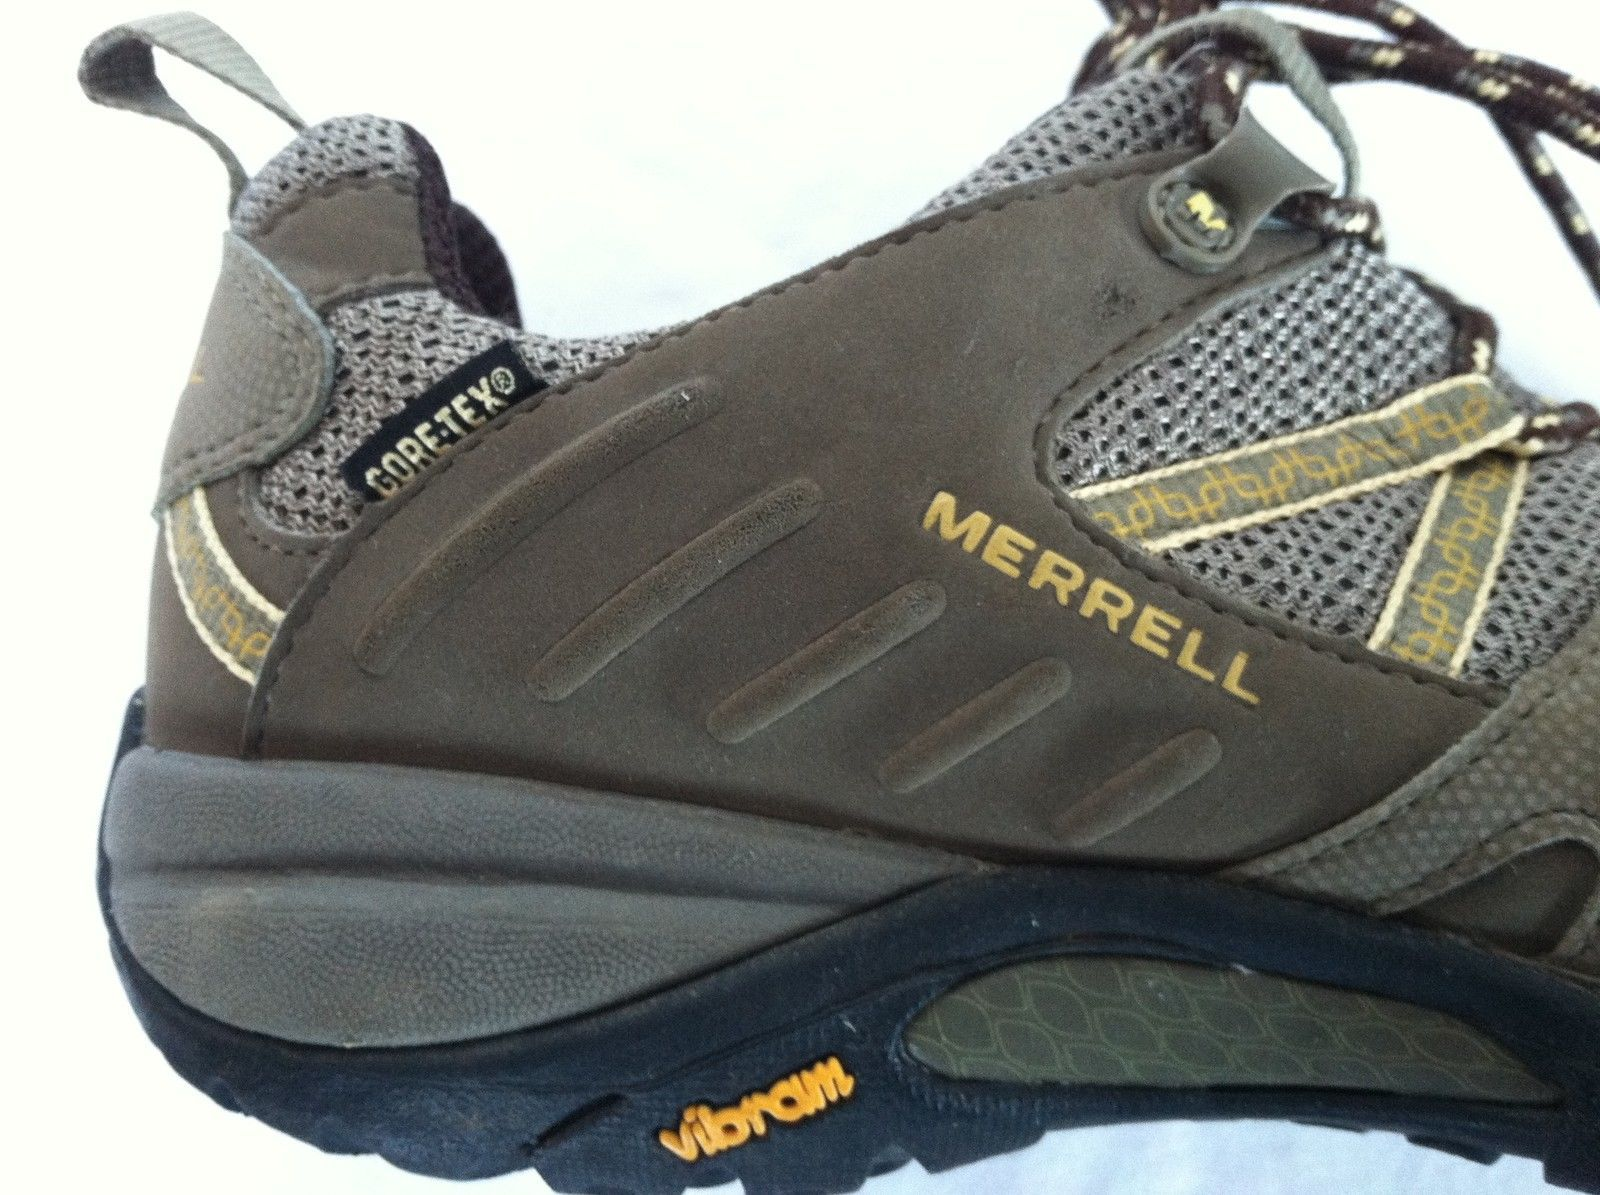 Merrell Siren Sport Gore-Tex XCR Brindle Hiking Boots Wmns 7 Hikers Trail Shoes